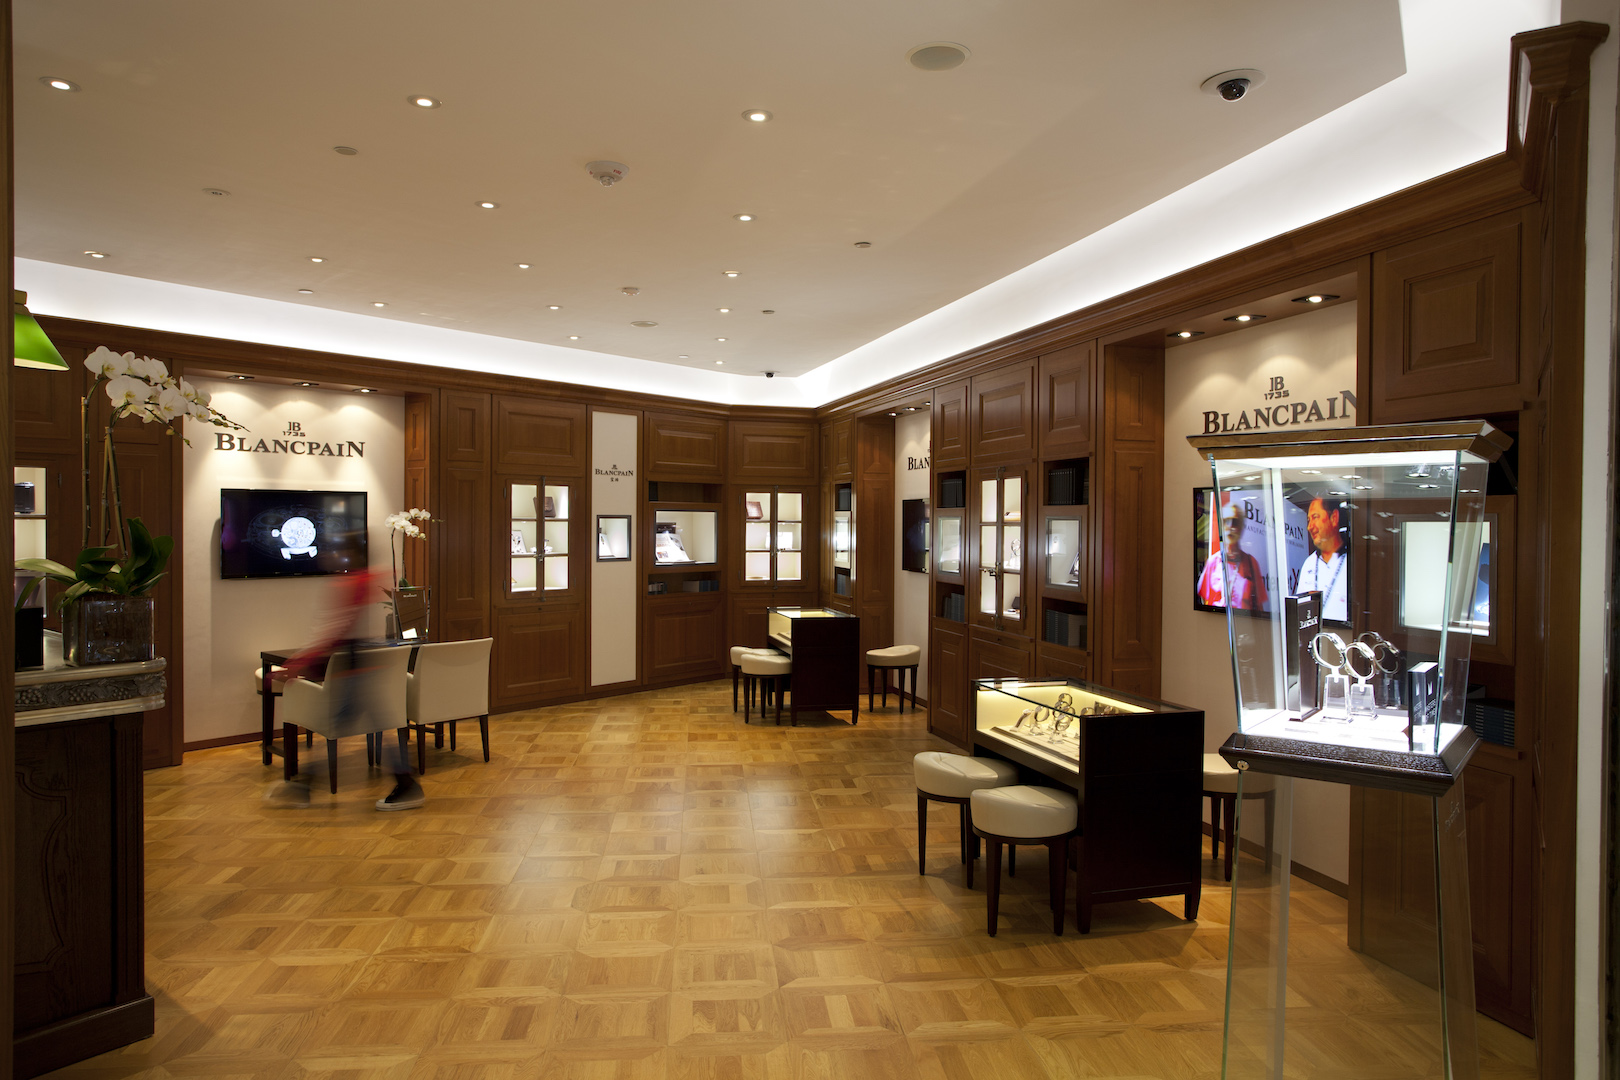 Blancpain at Four Seasons DFS Galleria